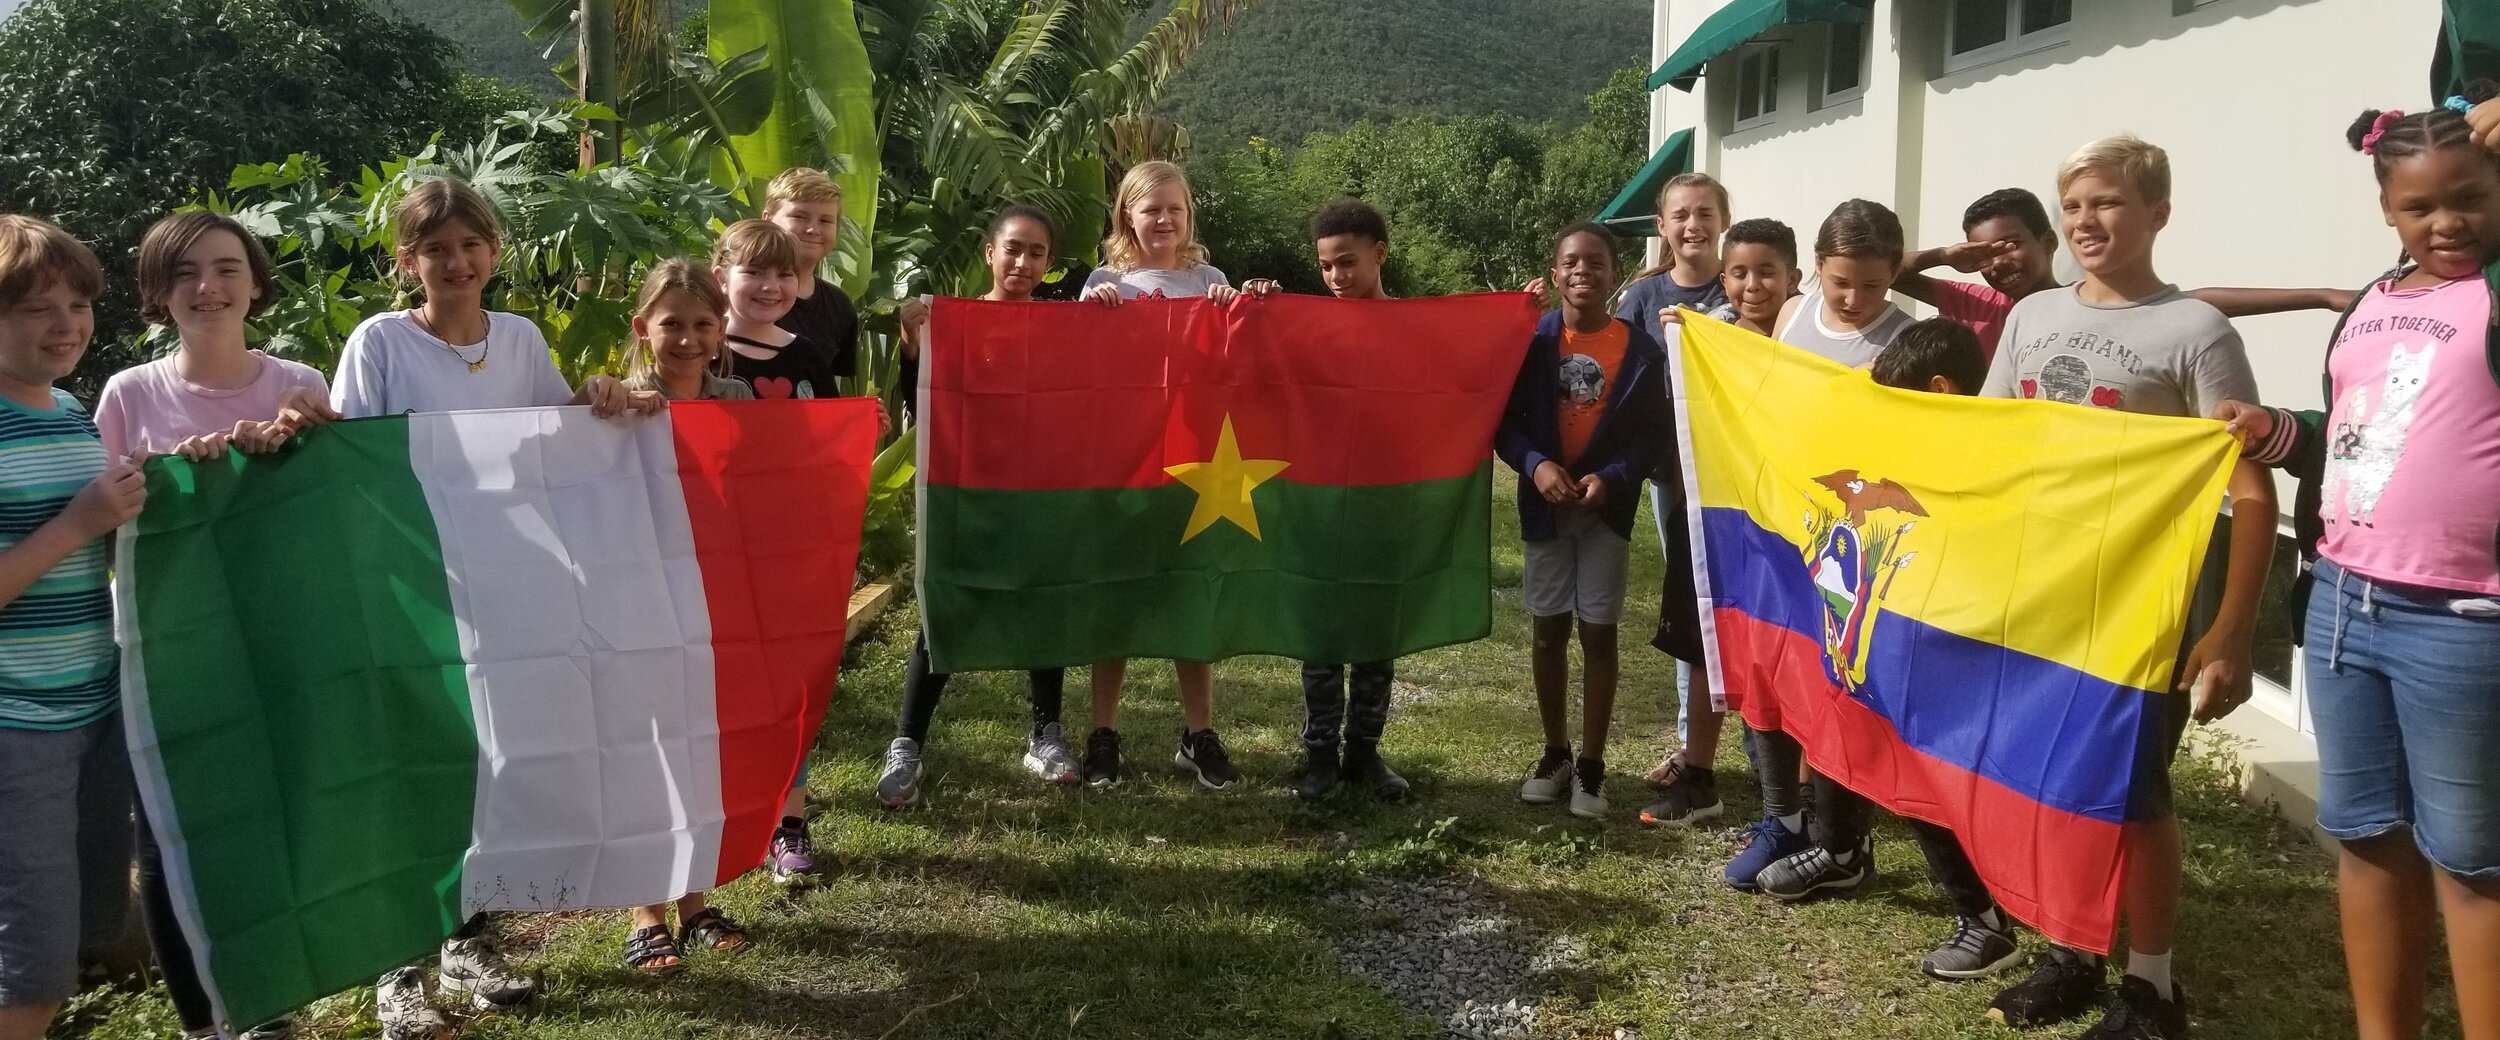 MMUN Students holding the flags of the countries to be represented. Left to right: Italy, Burkina Faso, Ecuador.